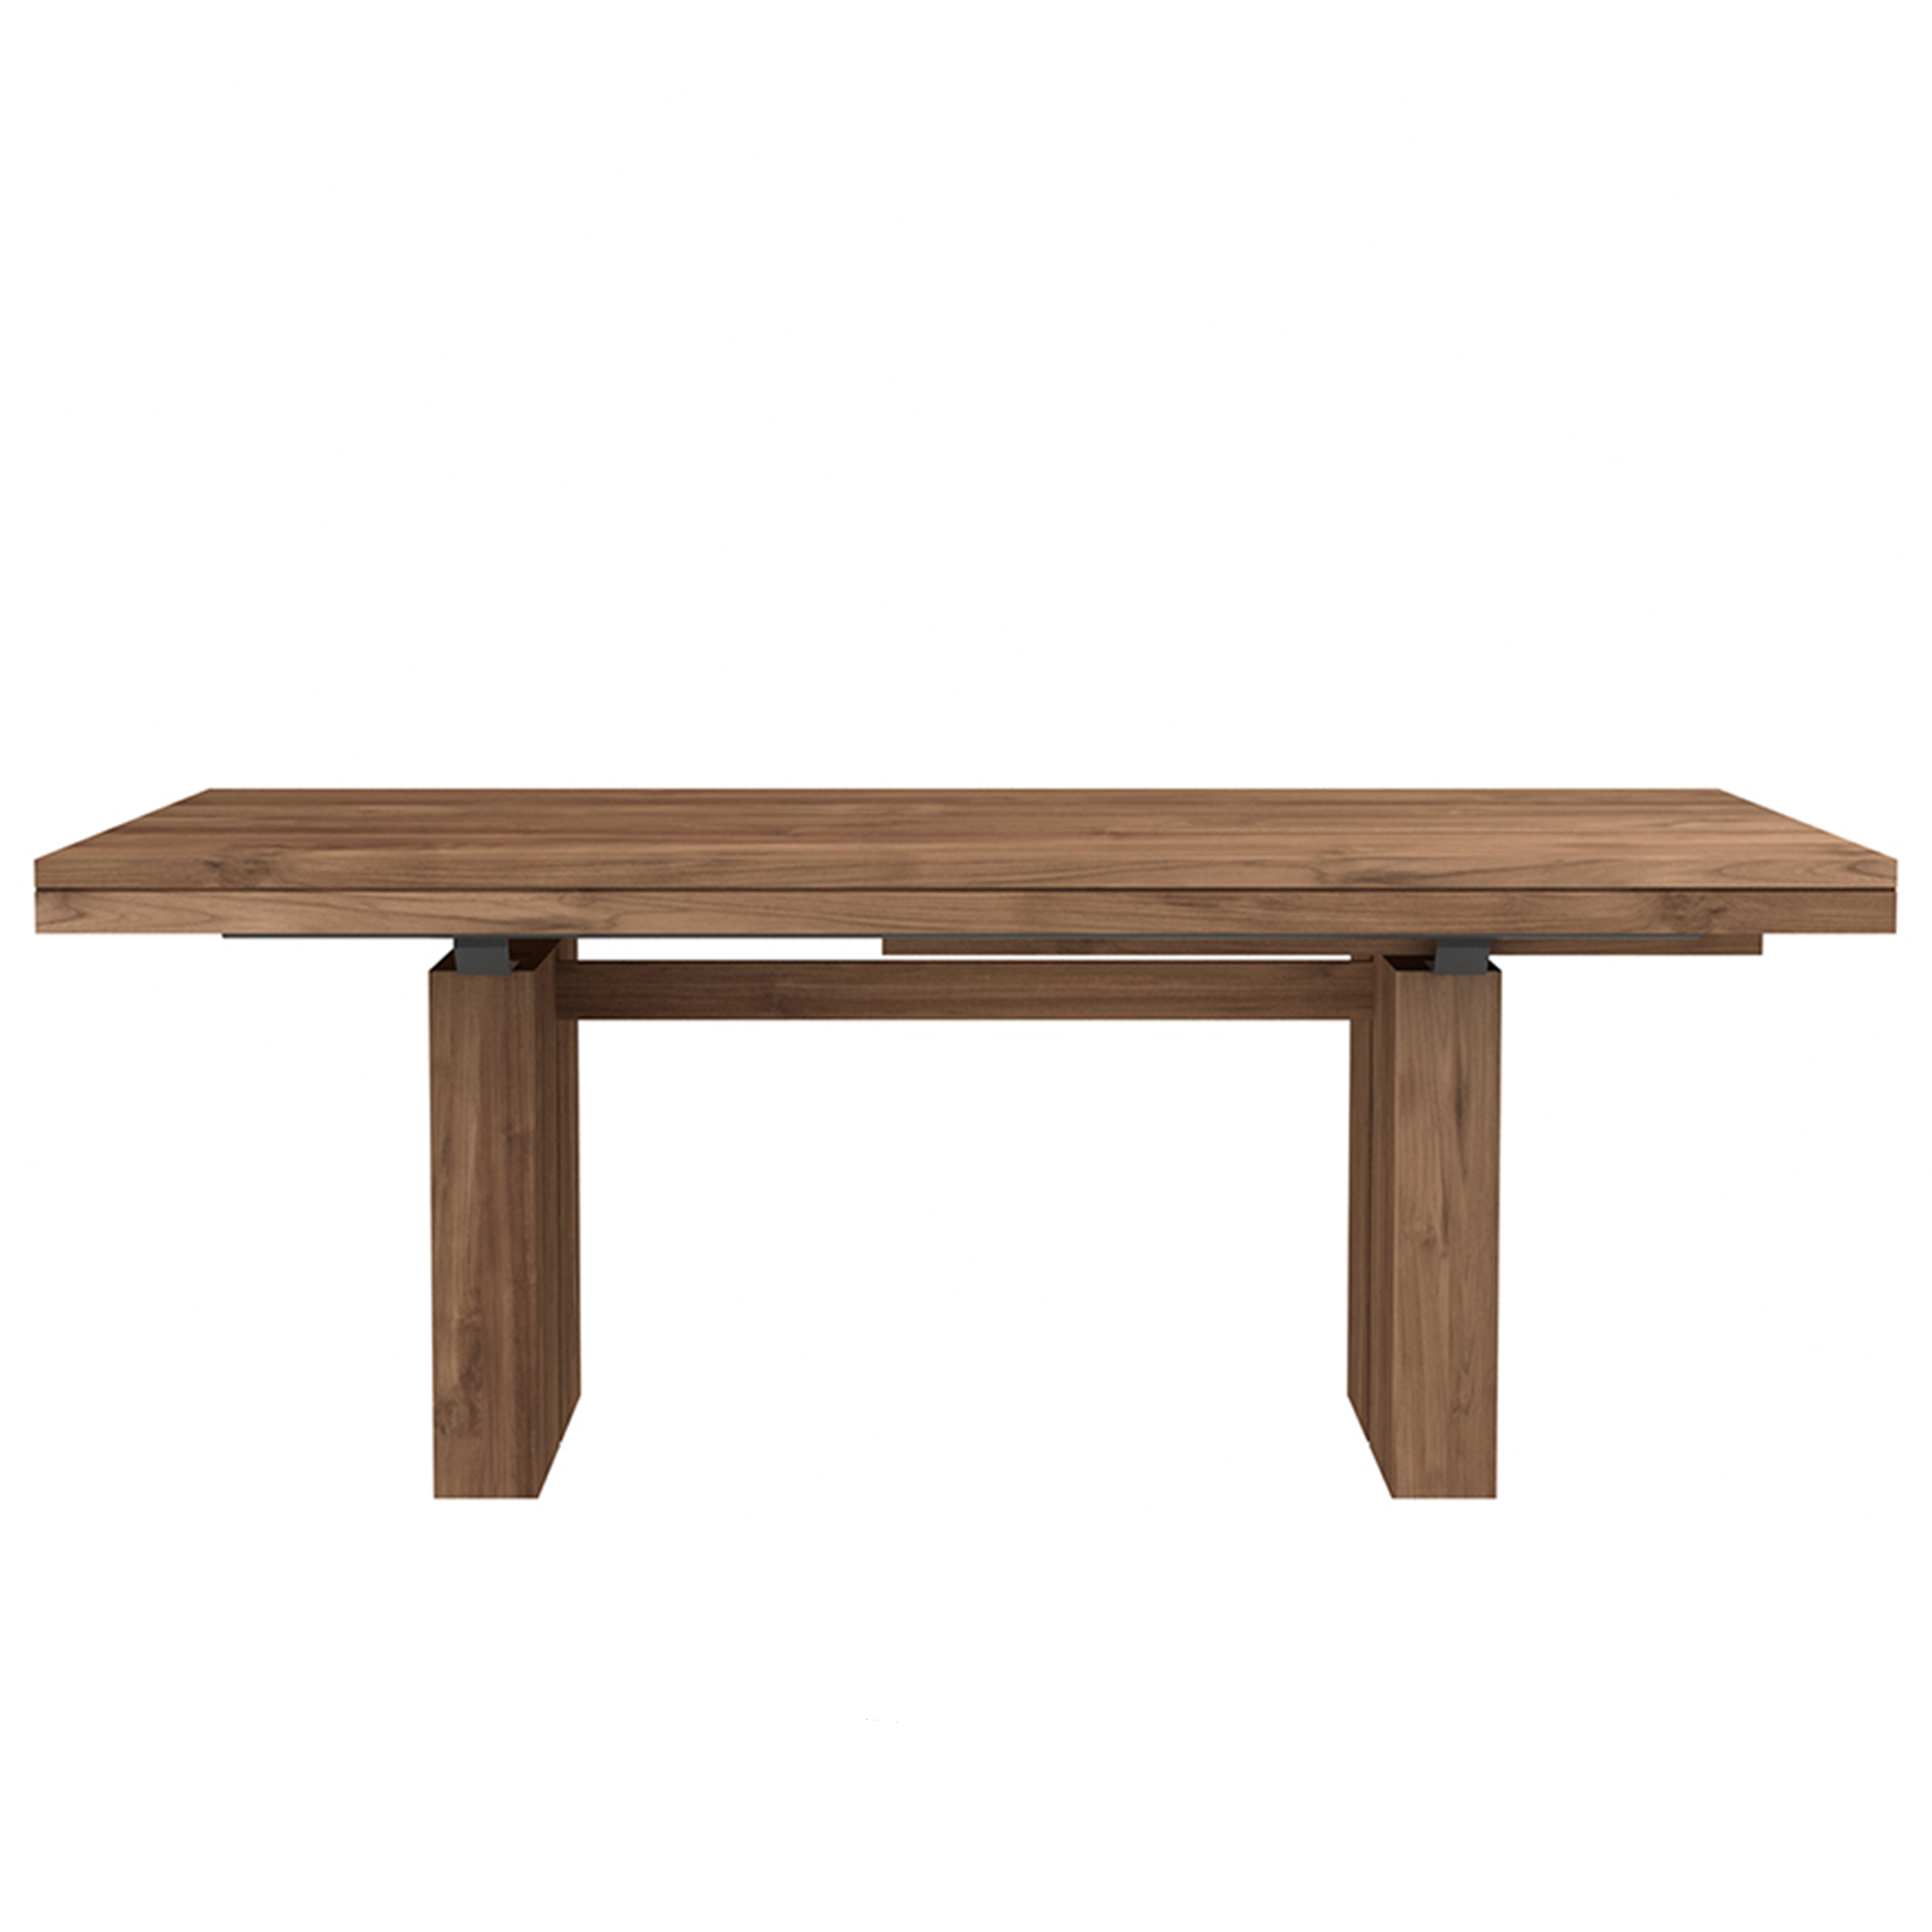 TGE-012066-Teak-Double-extendable-dining-table-200-300x100x76_f.jpg.png